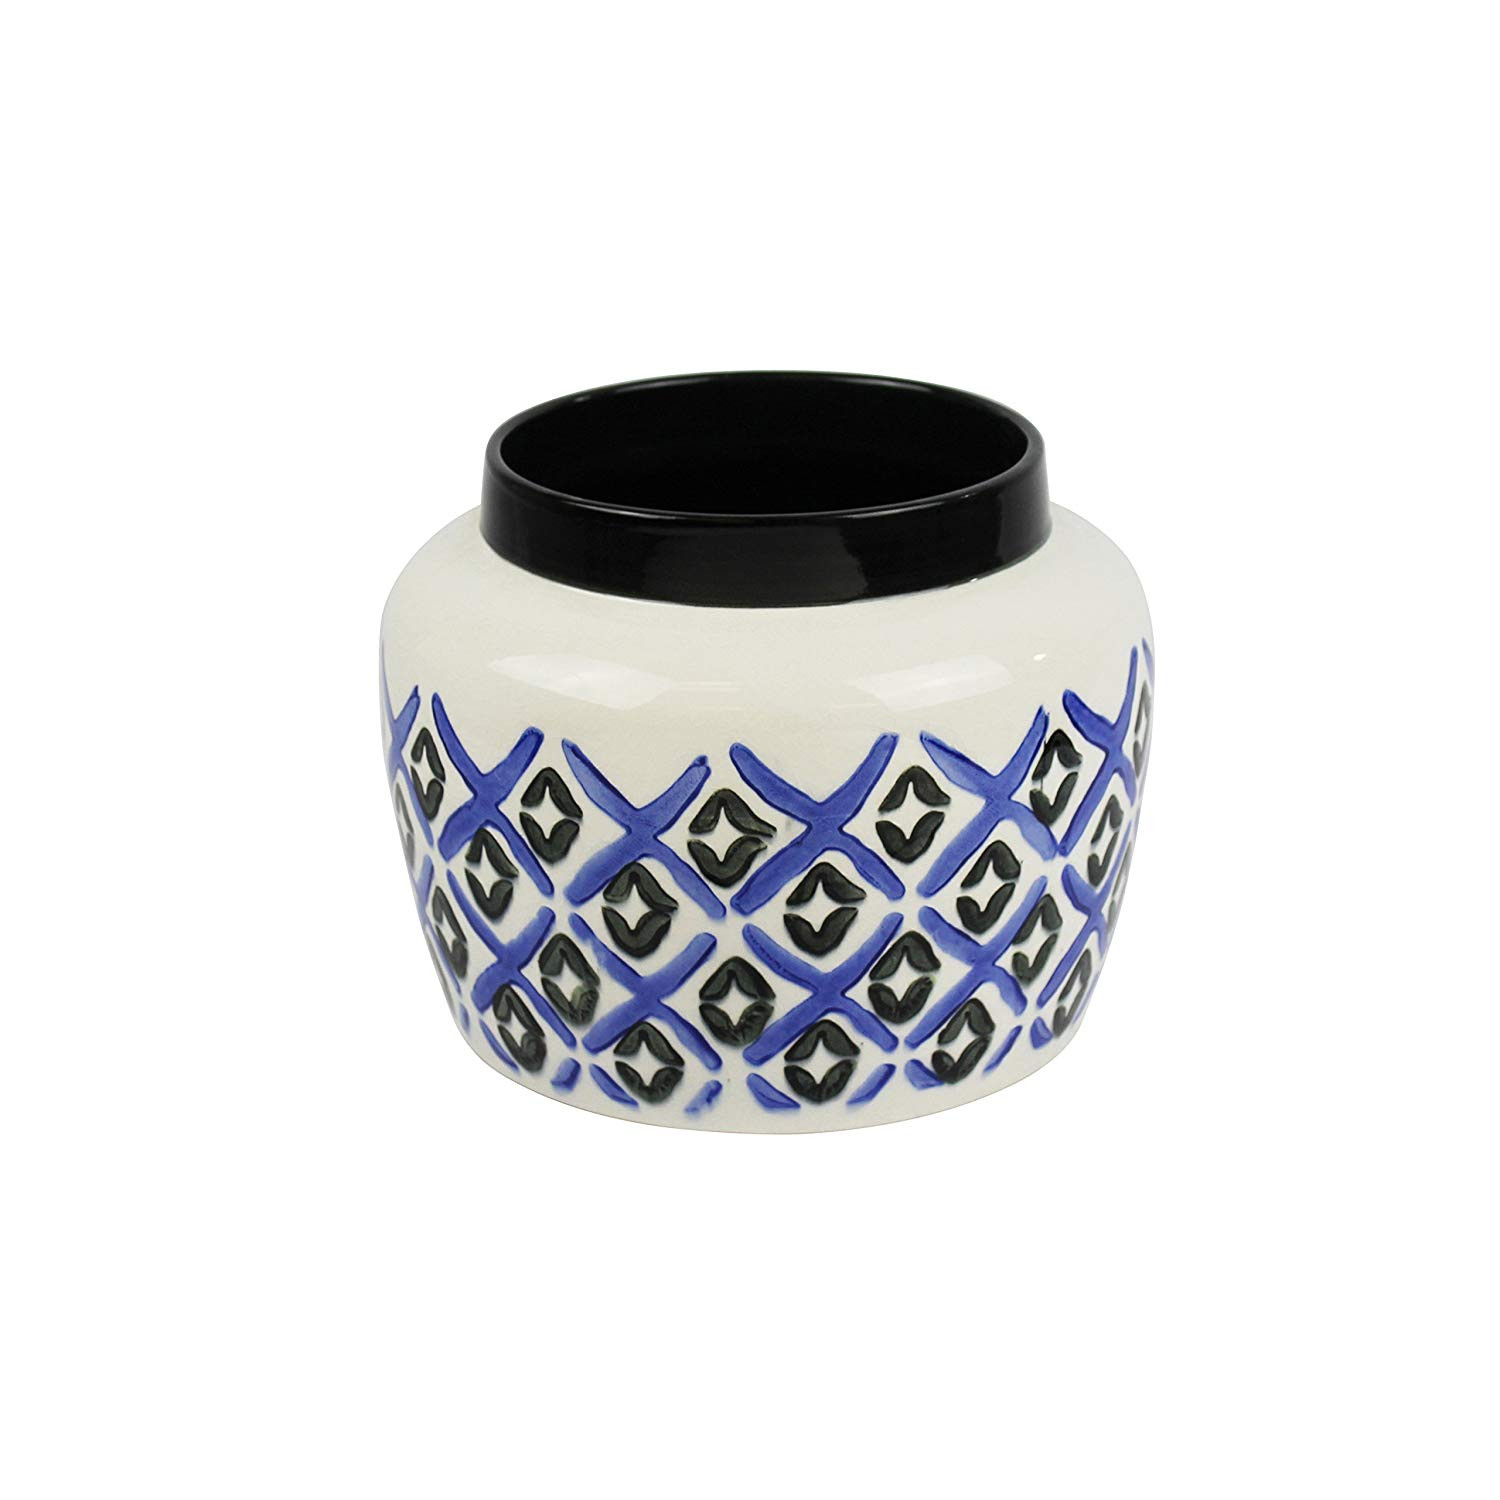 white and gold ceramic vase of amazon com sagebrook home 12686 01 ceramic pot 9 x 9 x 7 inches with regard to amazon com sagebrook home 12686 01 ceramic pot 9 x 9 x 7 inches white blue home kitchen